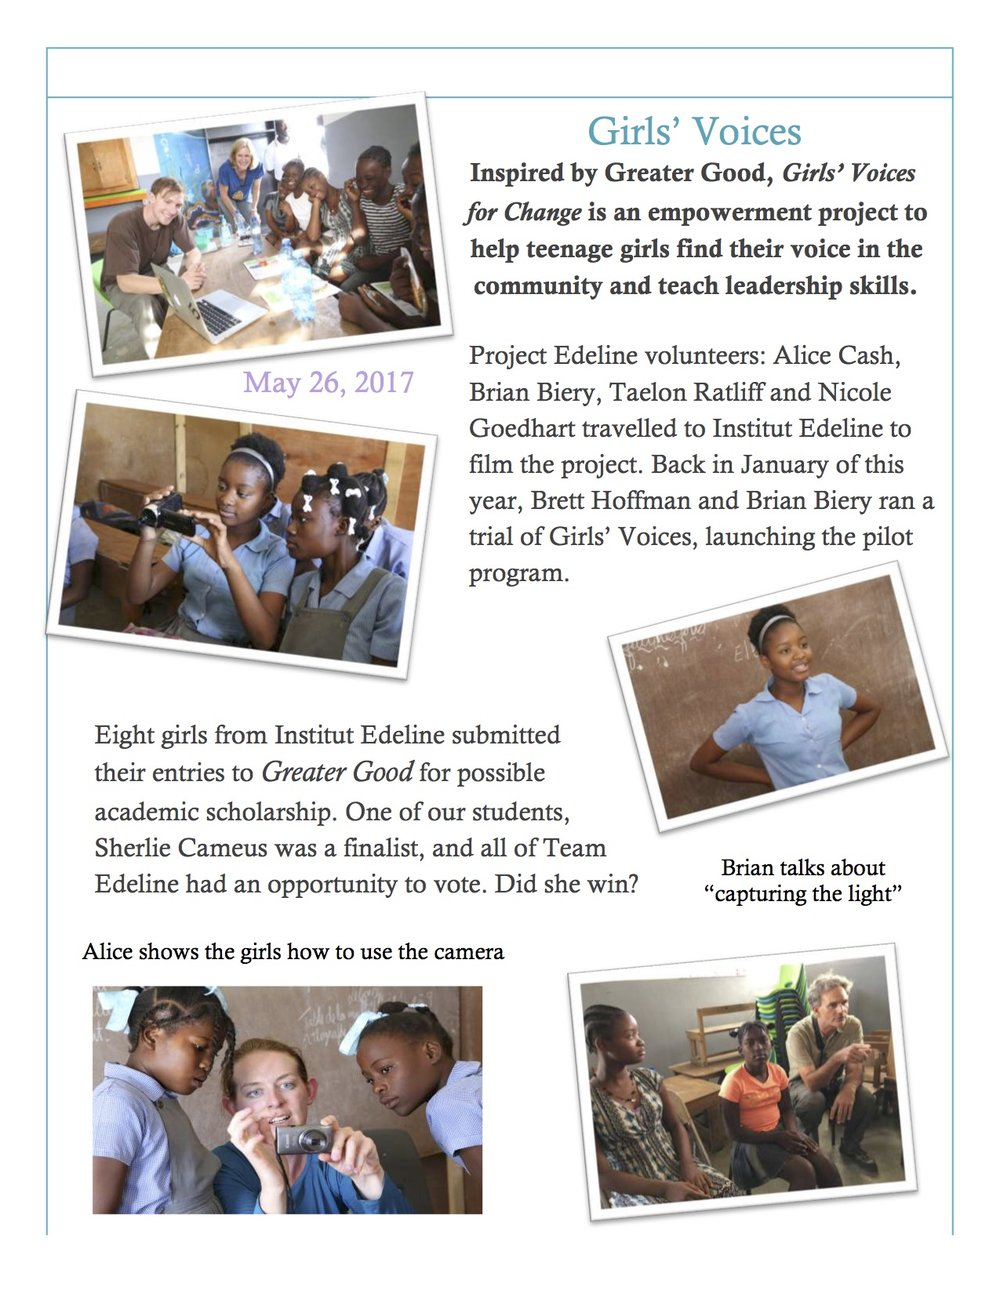 Haiti newsletter 2017-ilovepdf-compressed-3.jpg